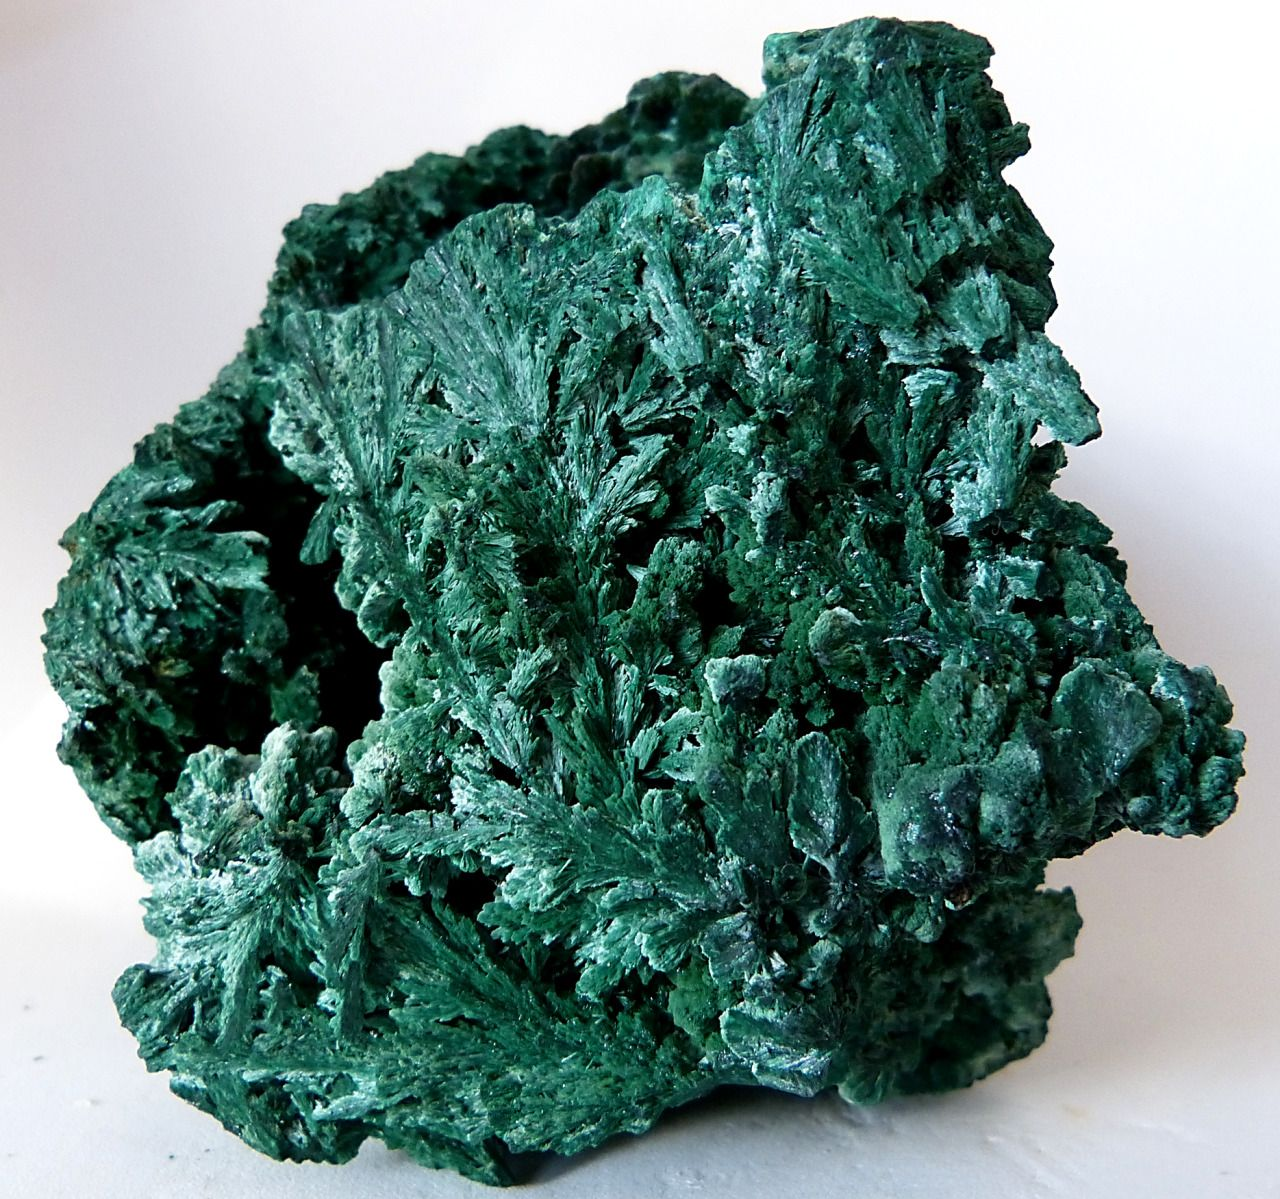 ALACHITE (Hydrated Copper Carbonate) from the Kolweizi Mine, Shaba, Congo. Solid, fibrous textured malachite measuring 11 centimeters across.